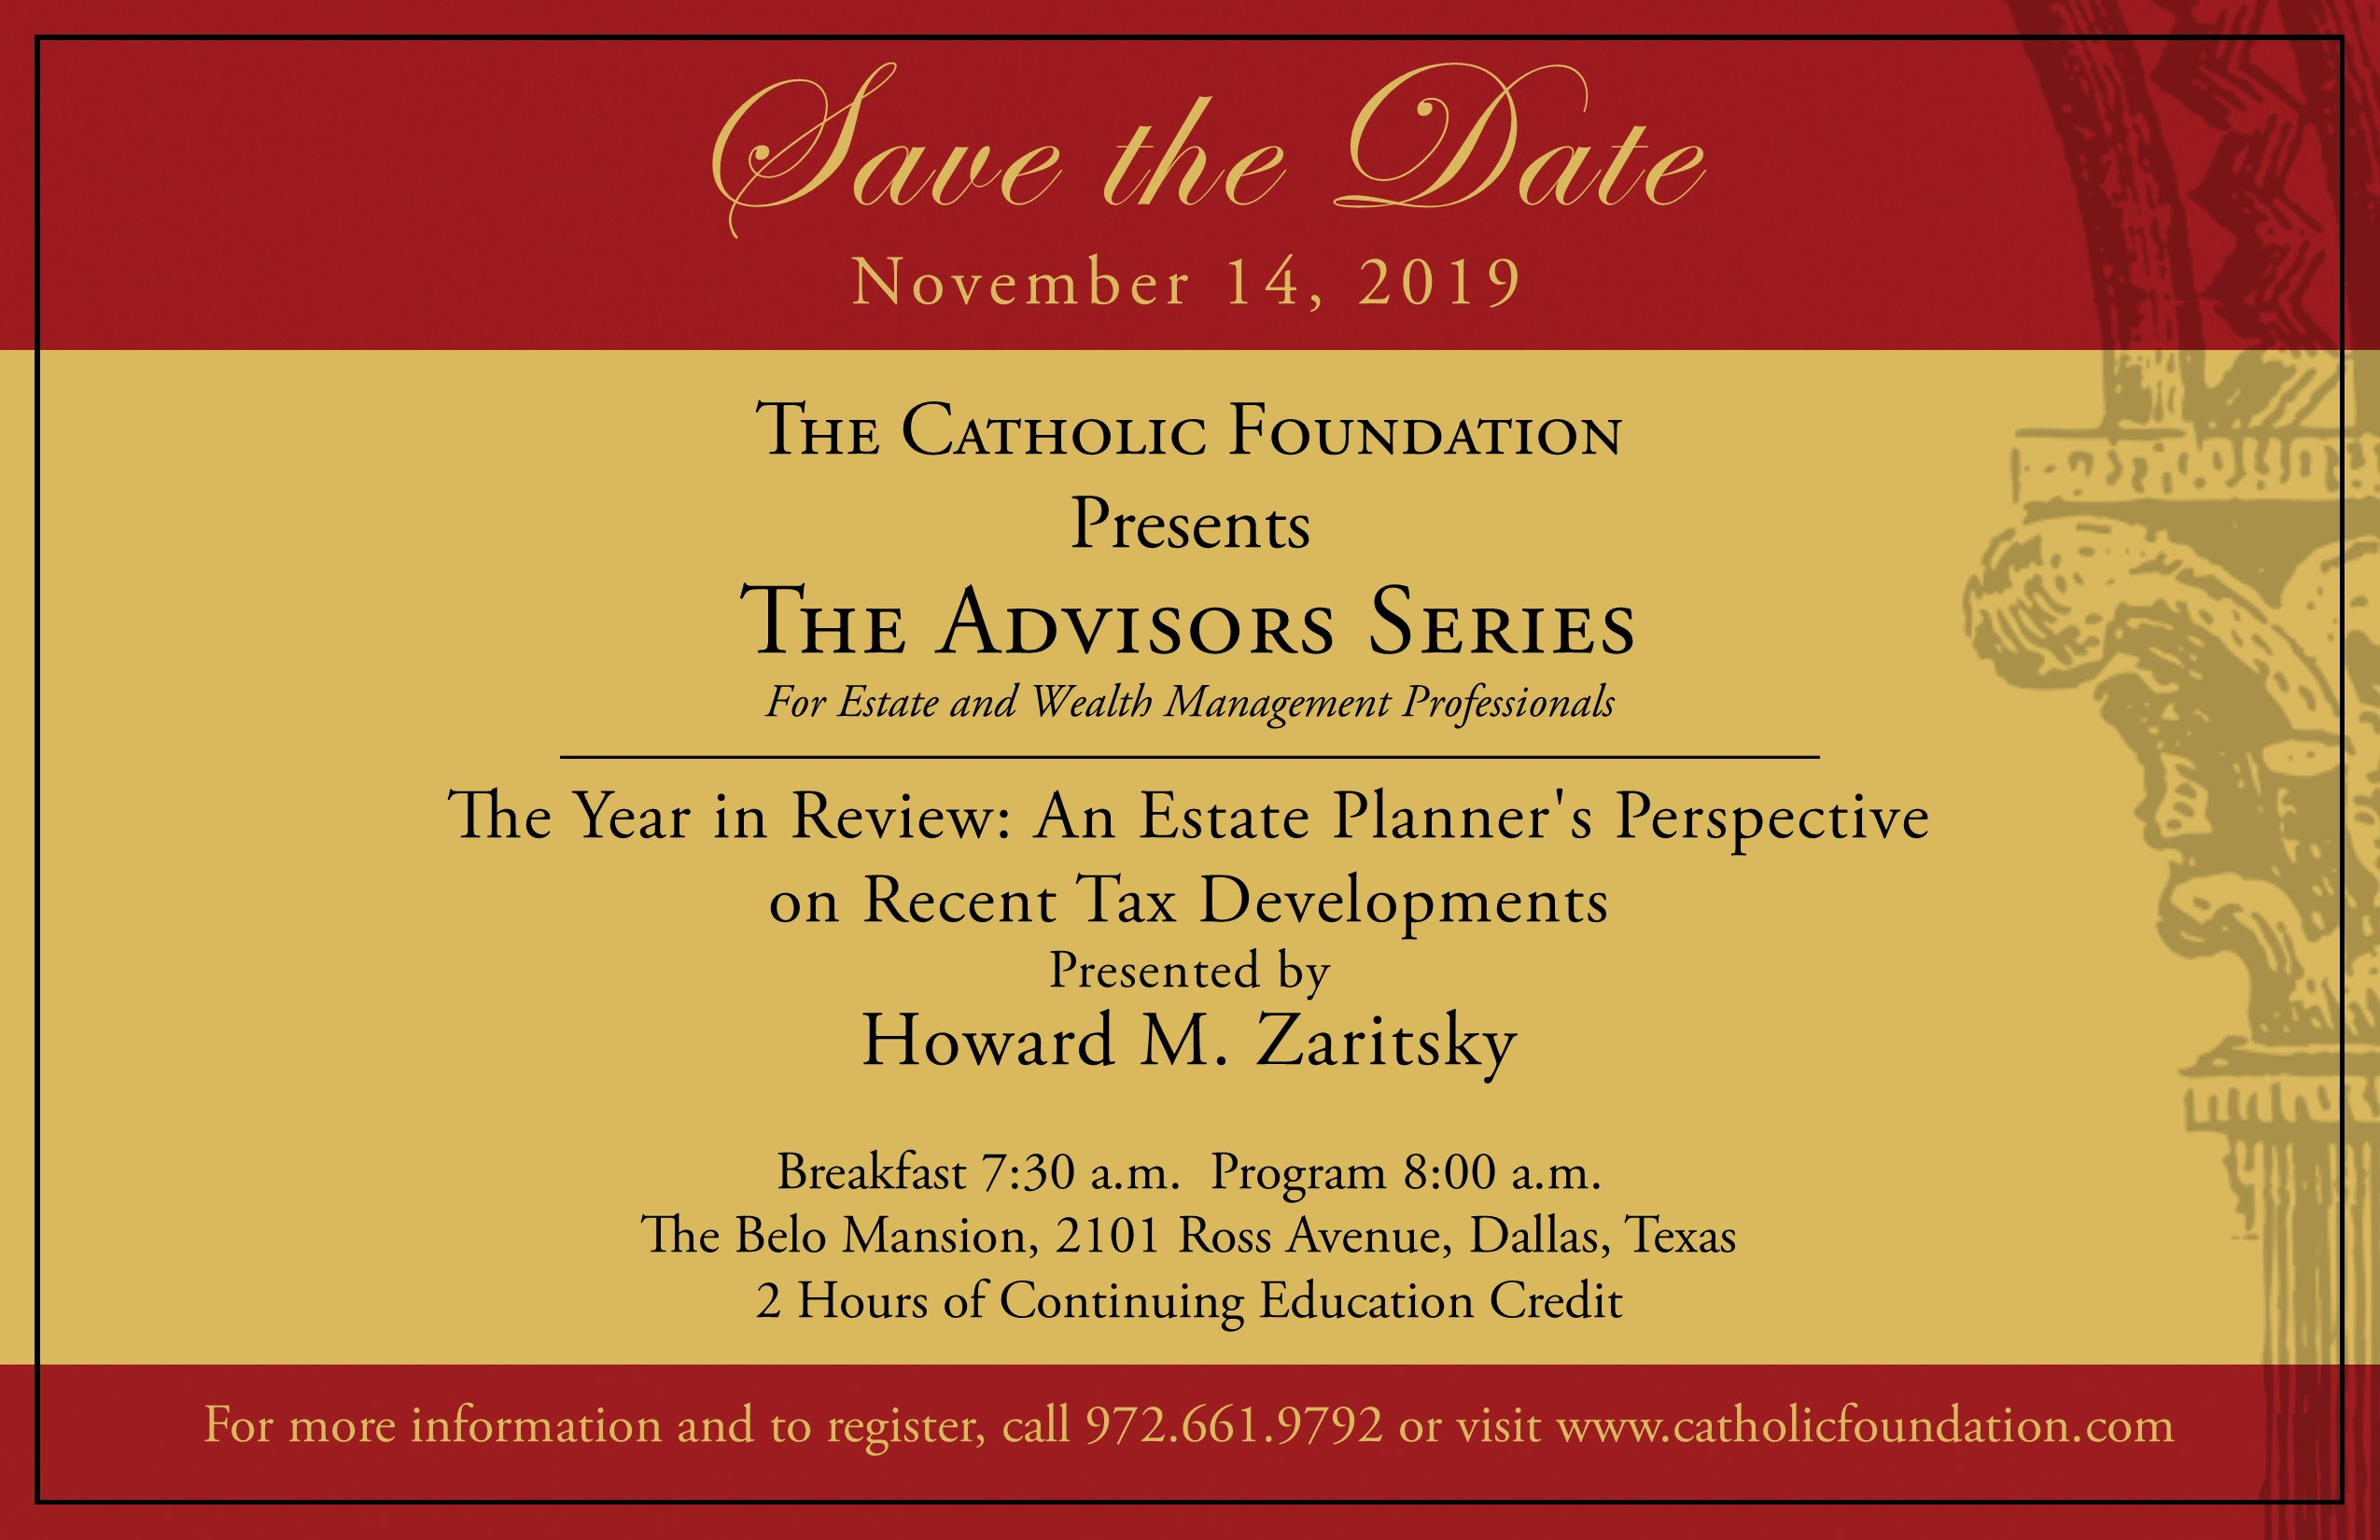 2019 Advisors Series Save the Date1.jpg